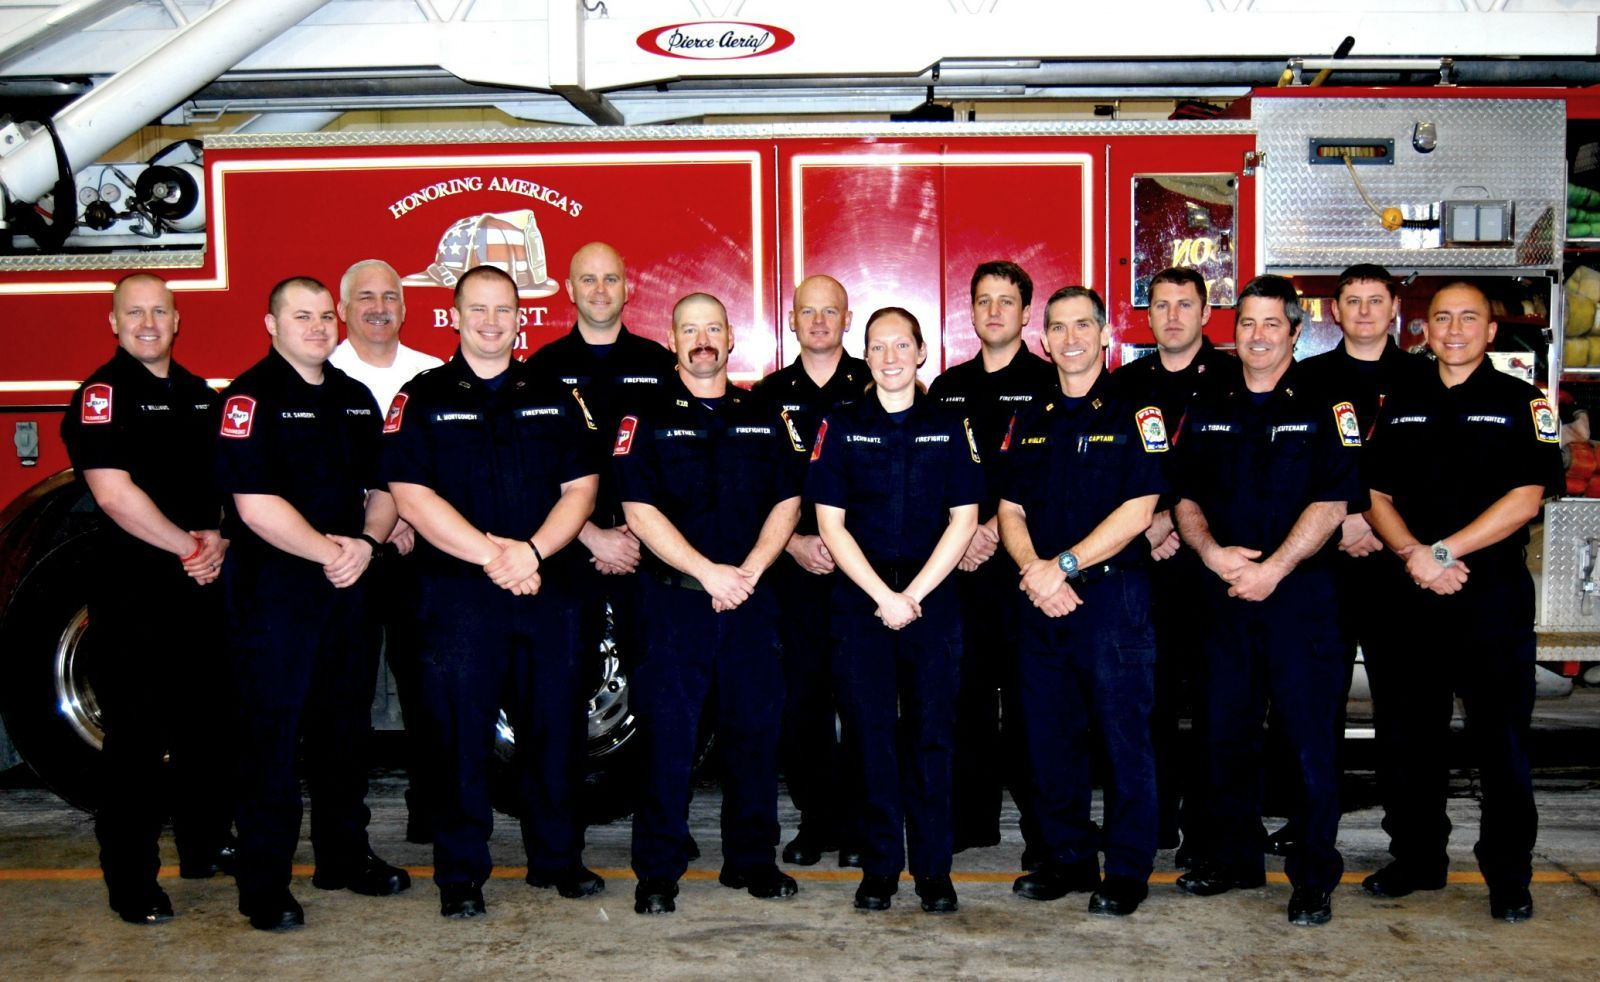 Addison, TX Addison, Fire department, My dad